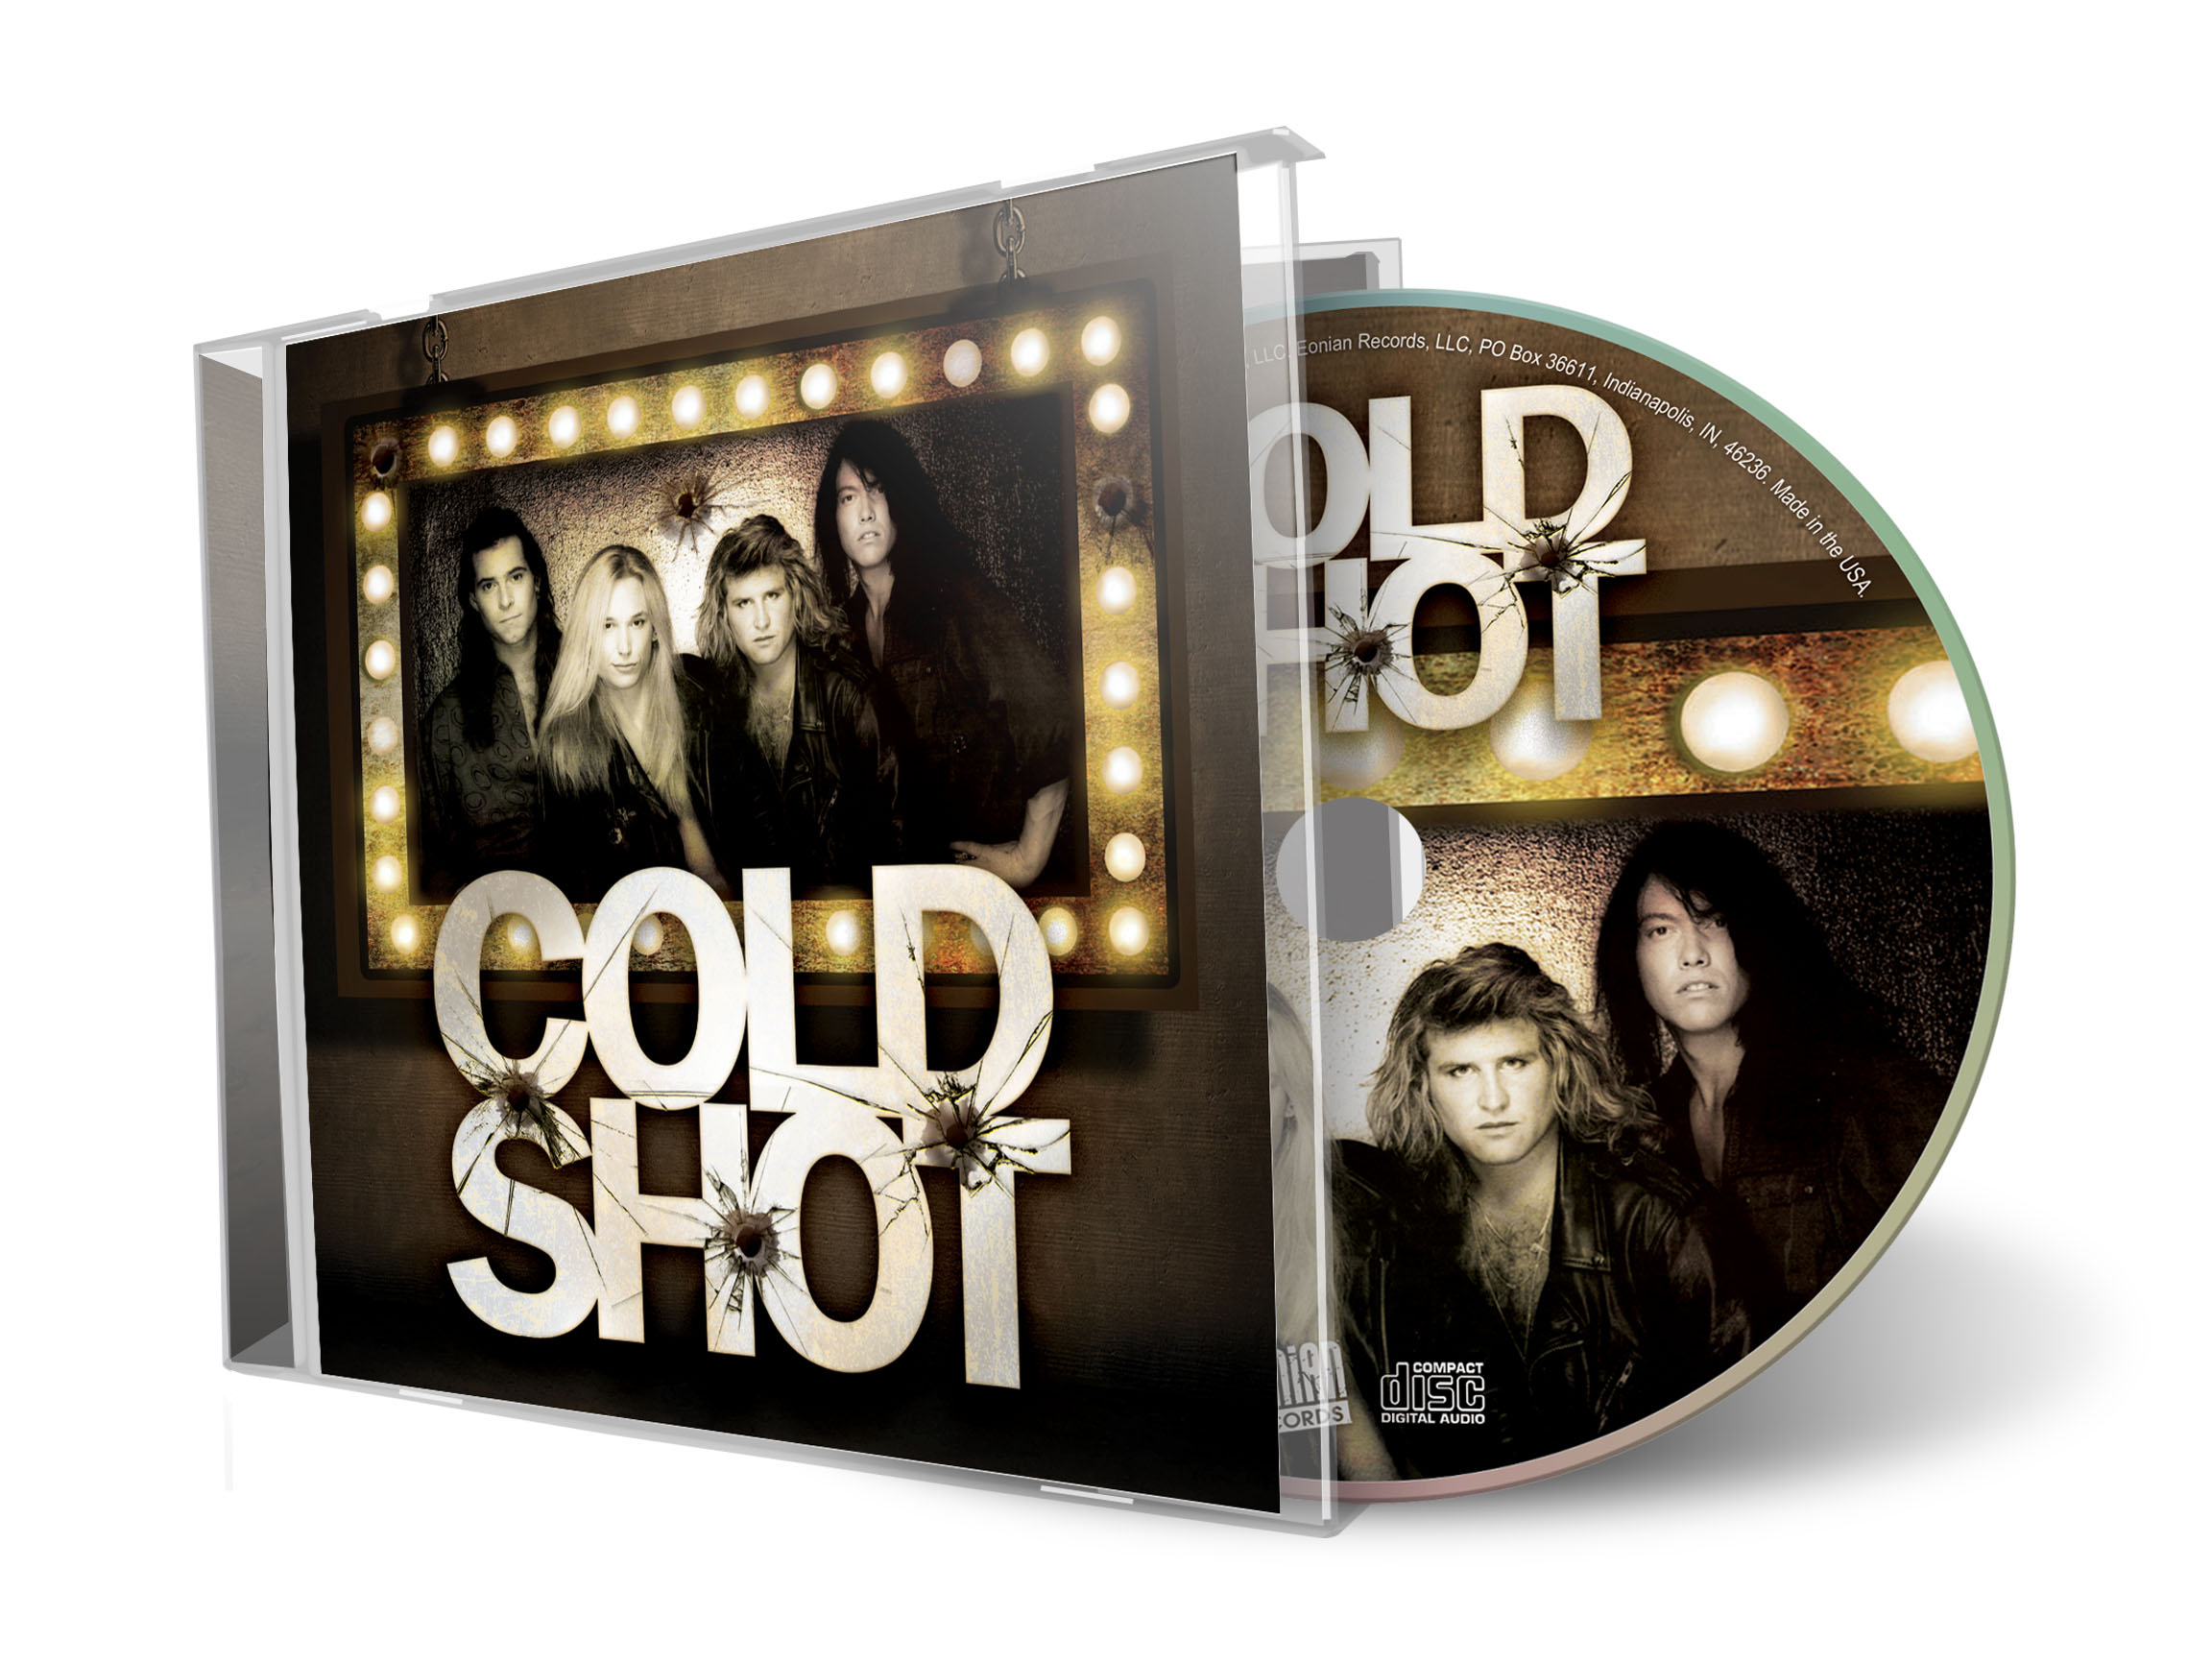 COLD SHOT - Cold Shot   Los Angeles, California   Release: August 26, 2014